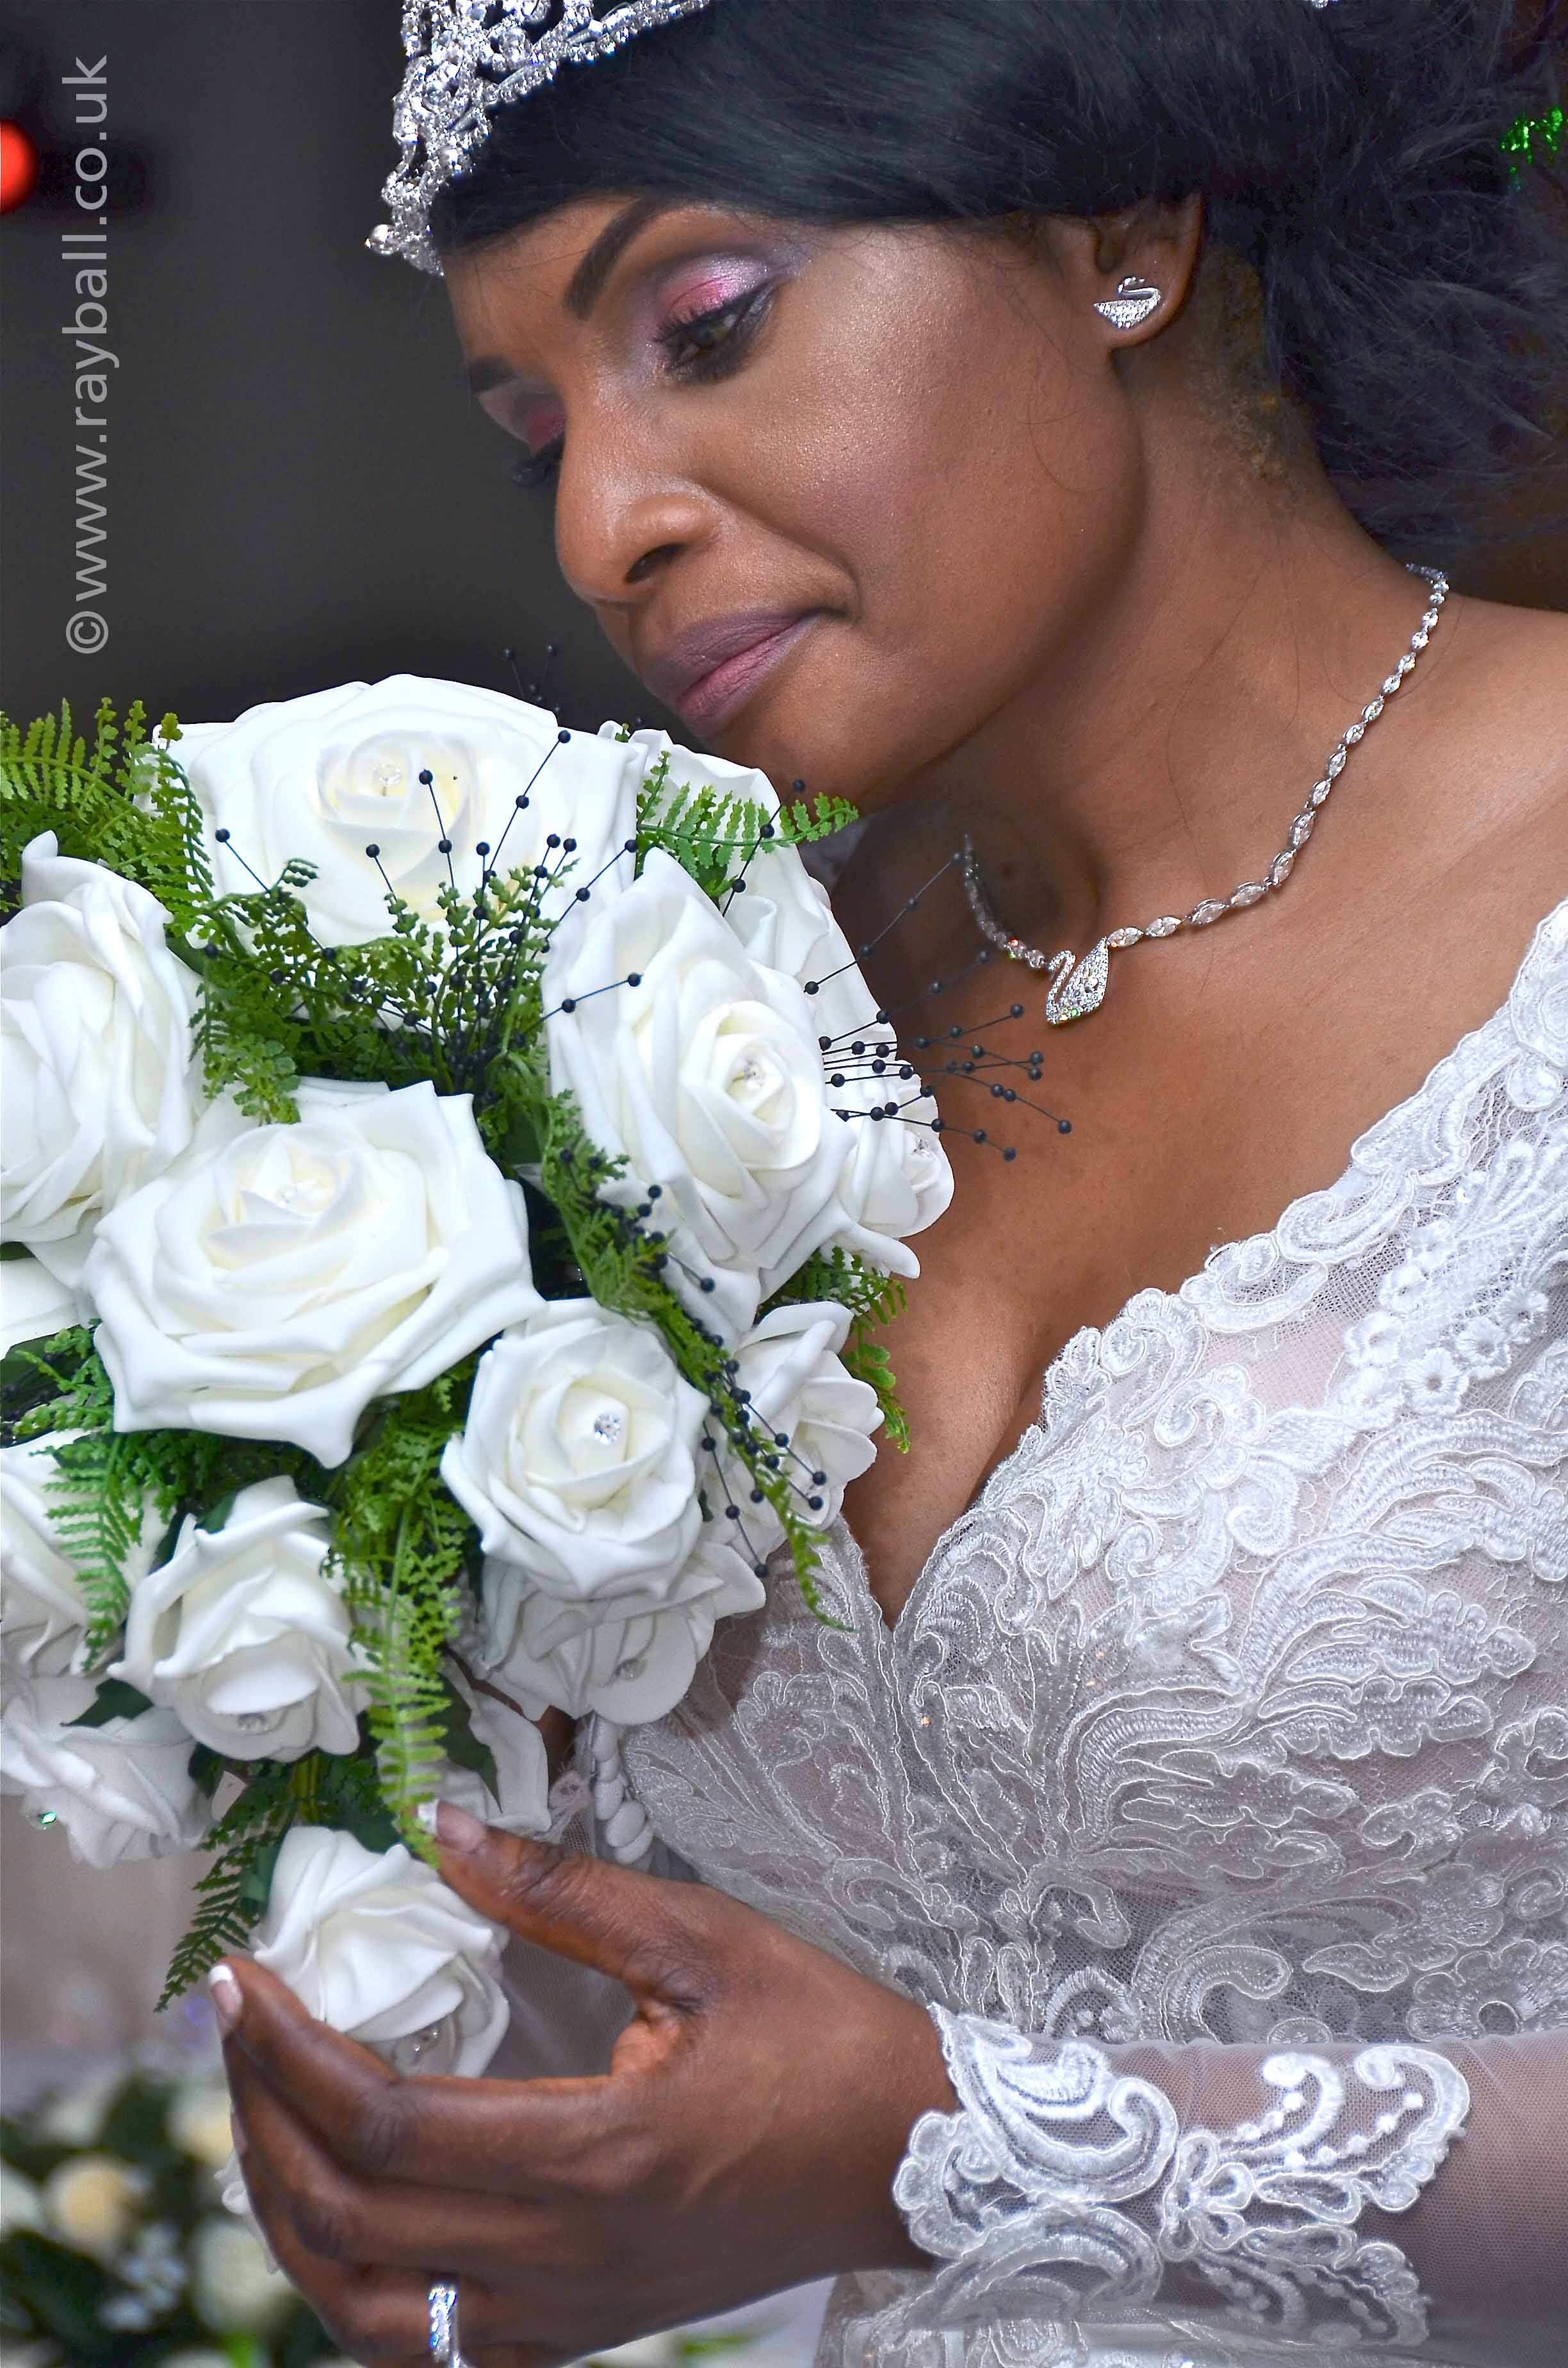 Pensive Epsom bride admiring her bouquet of white roses during a quiet moment at her eventful church wedding at Sanderstead, South Croydon. Epsom Photography Surrey..